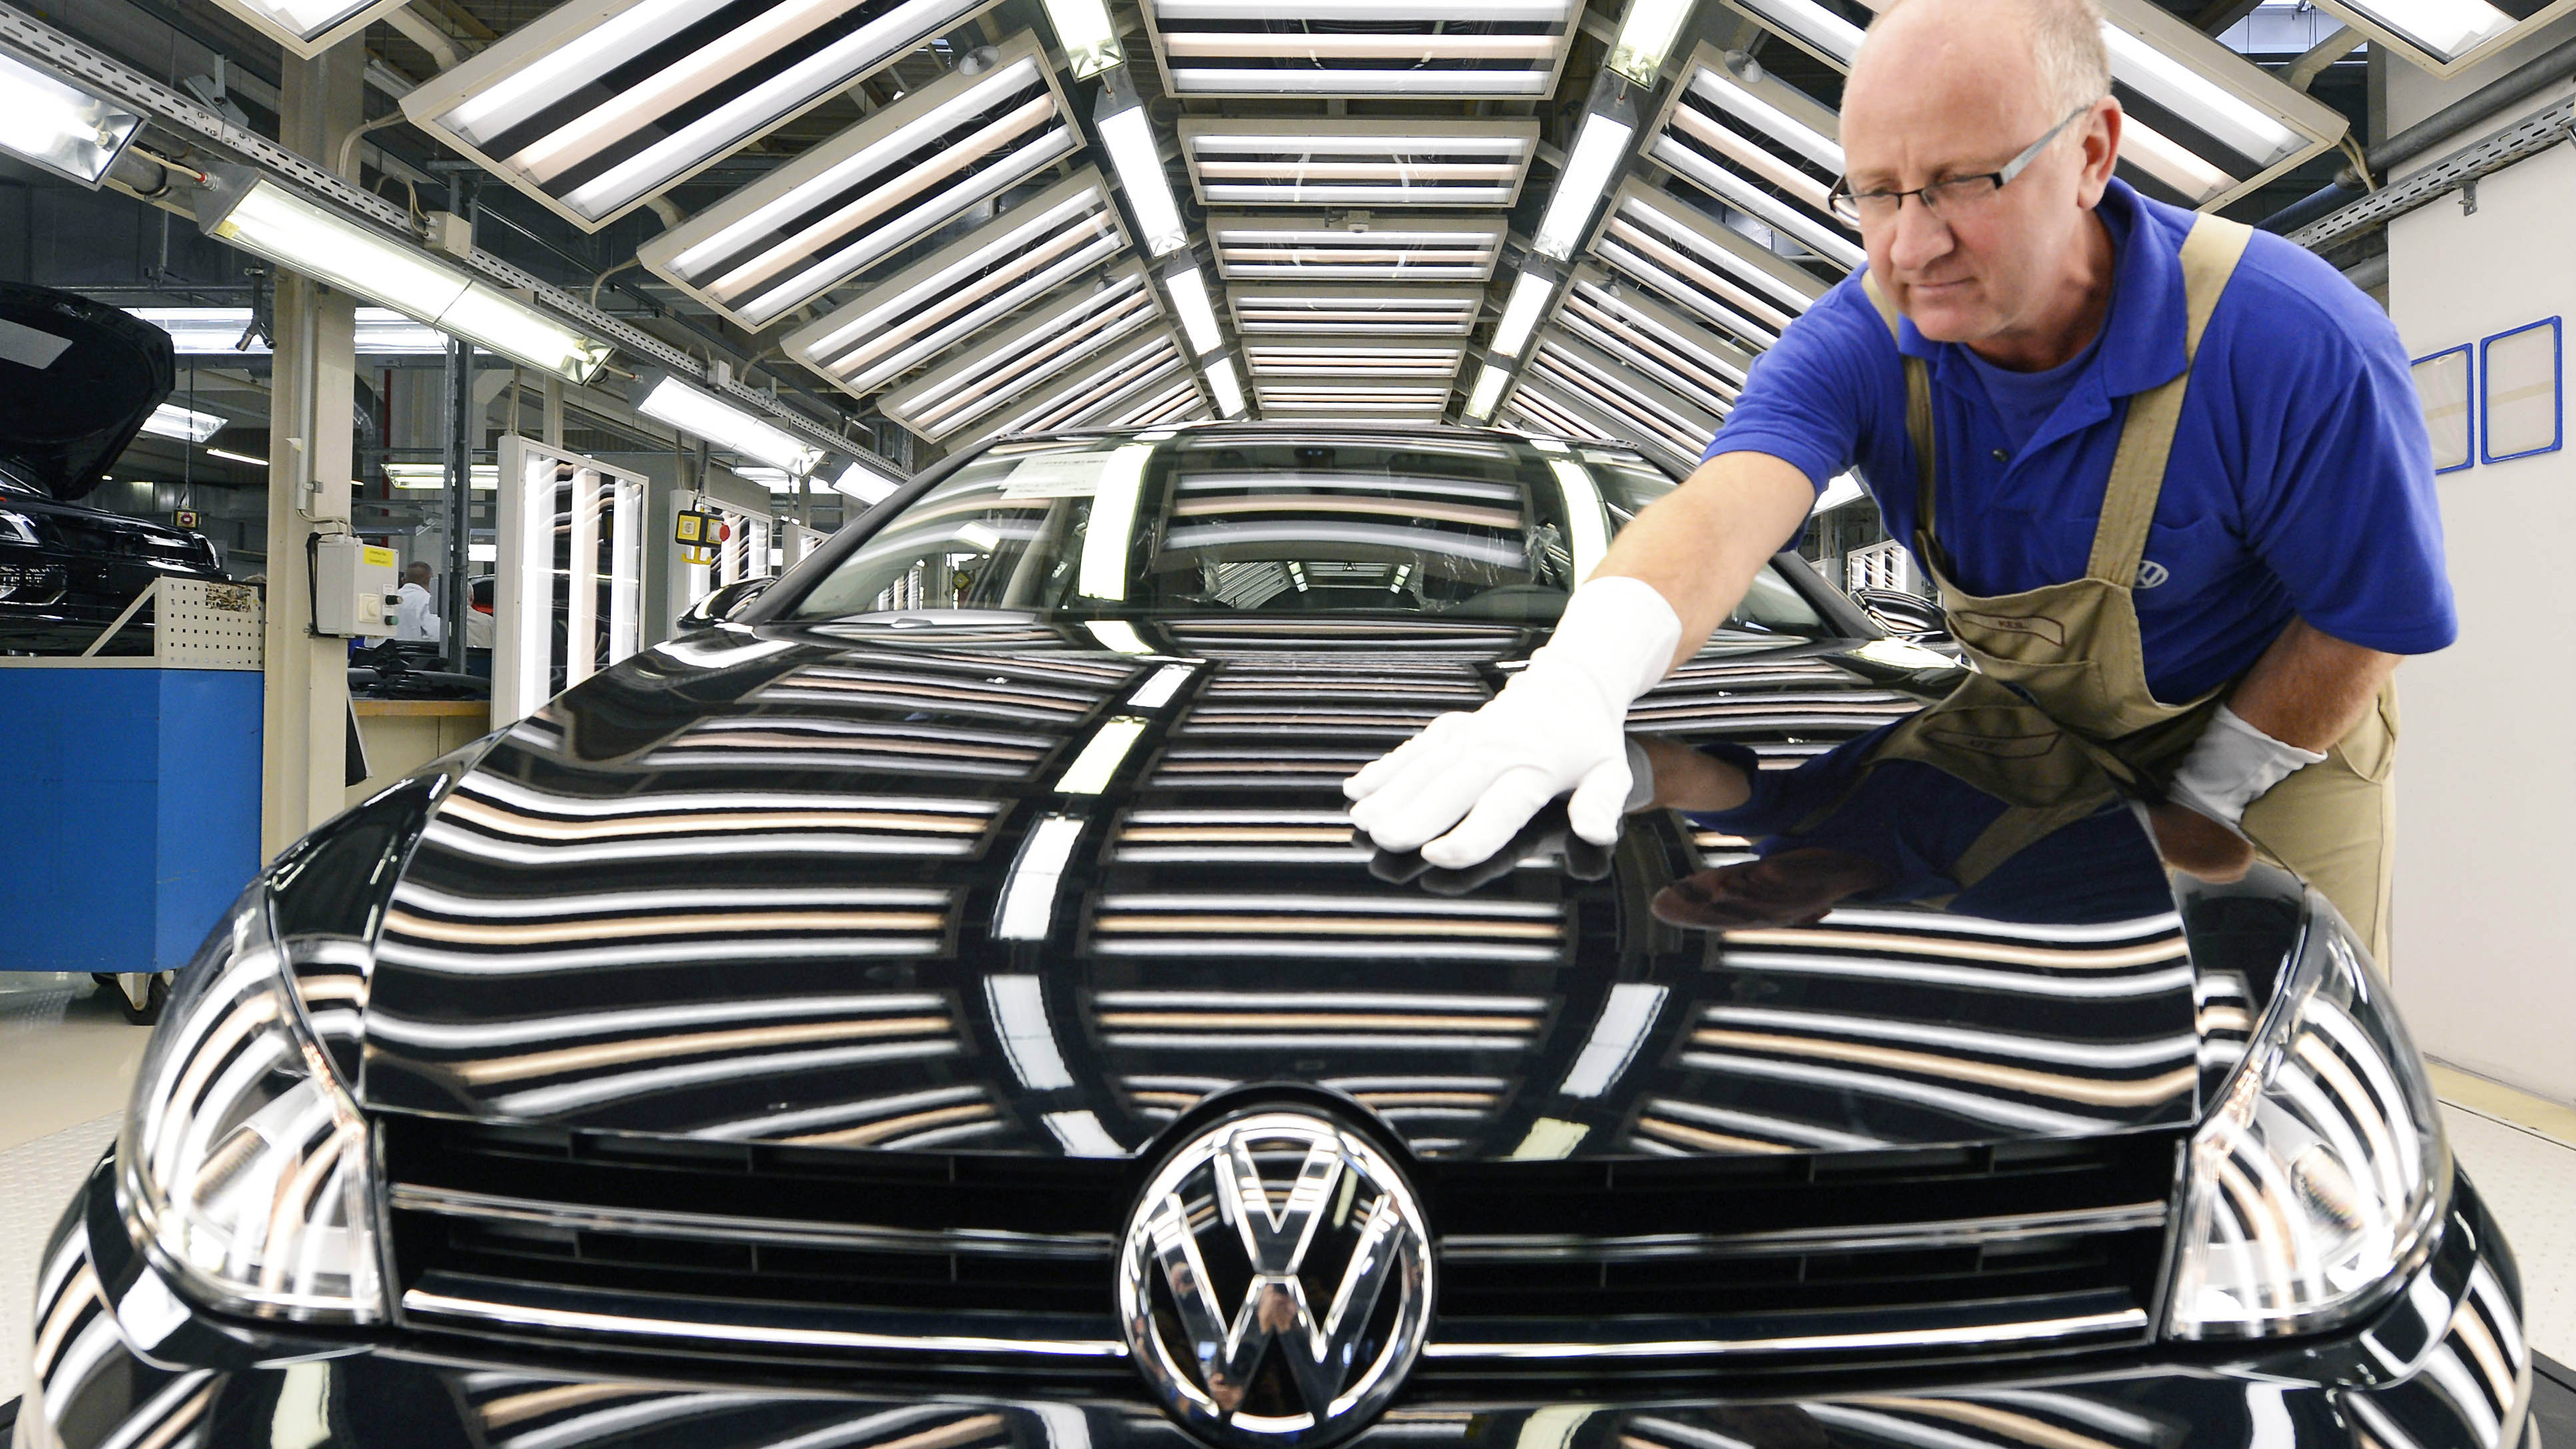 "FILE - In this Nov. 9, 2012 file photo worker Michael Keil checks a Golf VII car during a press tour at the plant of the German car manufacturer Volkswagen AG (VW) in Zwickau, central Germany. German automaker Volkswagen AG said Wednesday, July 31, 2013 net profit fell 50 percent in the second quarter in ""a difficult market environment"" but said it will still achieve its earnings goal for the year. Net profit fell to 2.85 billion euros from 5.70 billion in the same quarter a year ago. Revenue rose 8.5 percent to 52.1 billion euros. (AP Photo/Jens Meyer,File)"